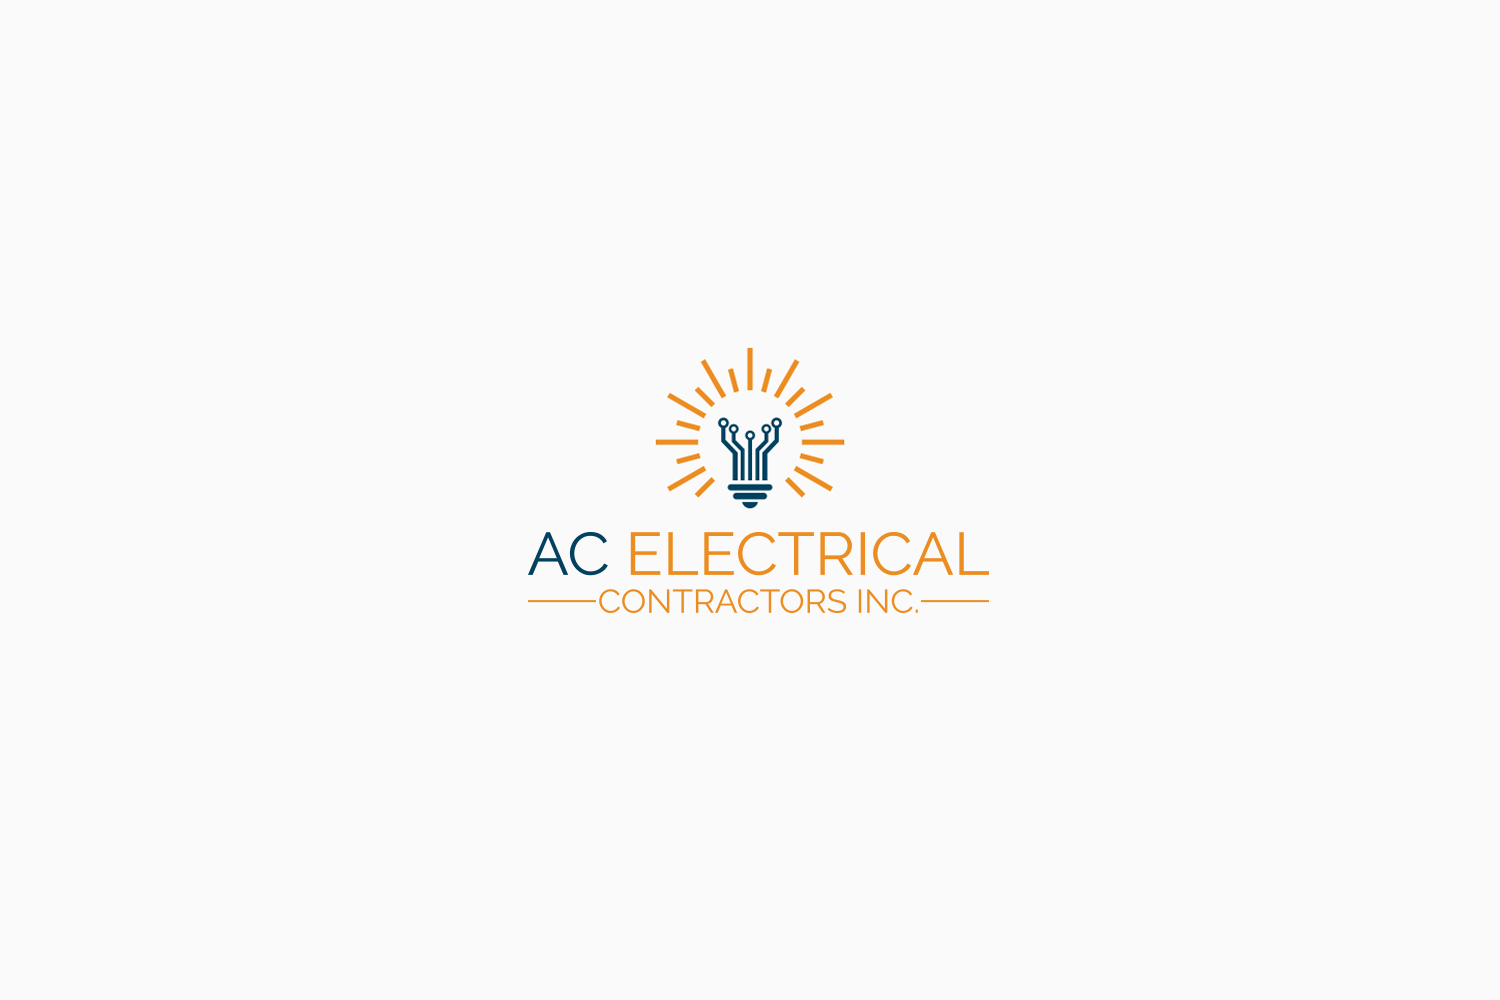 Professional, Masculine, Electrical Logo Design for AC